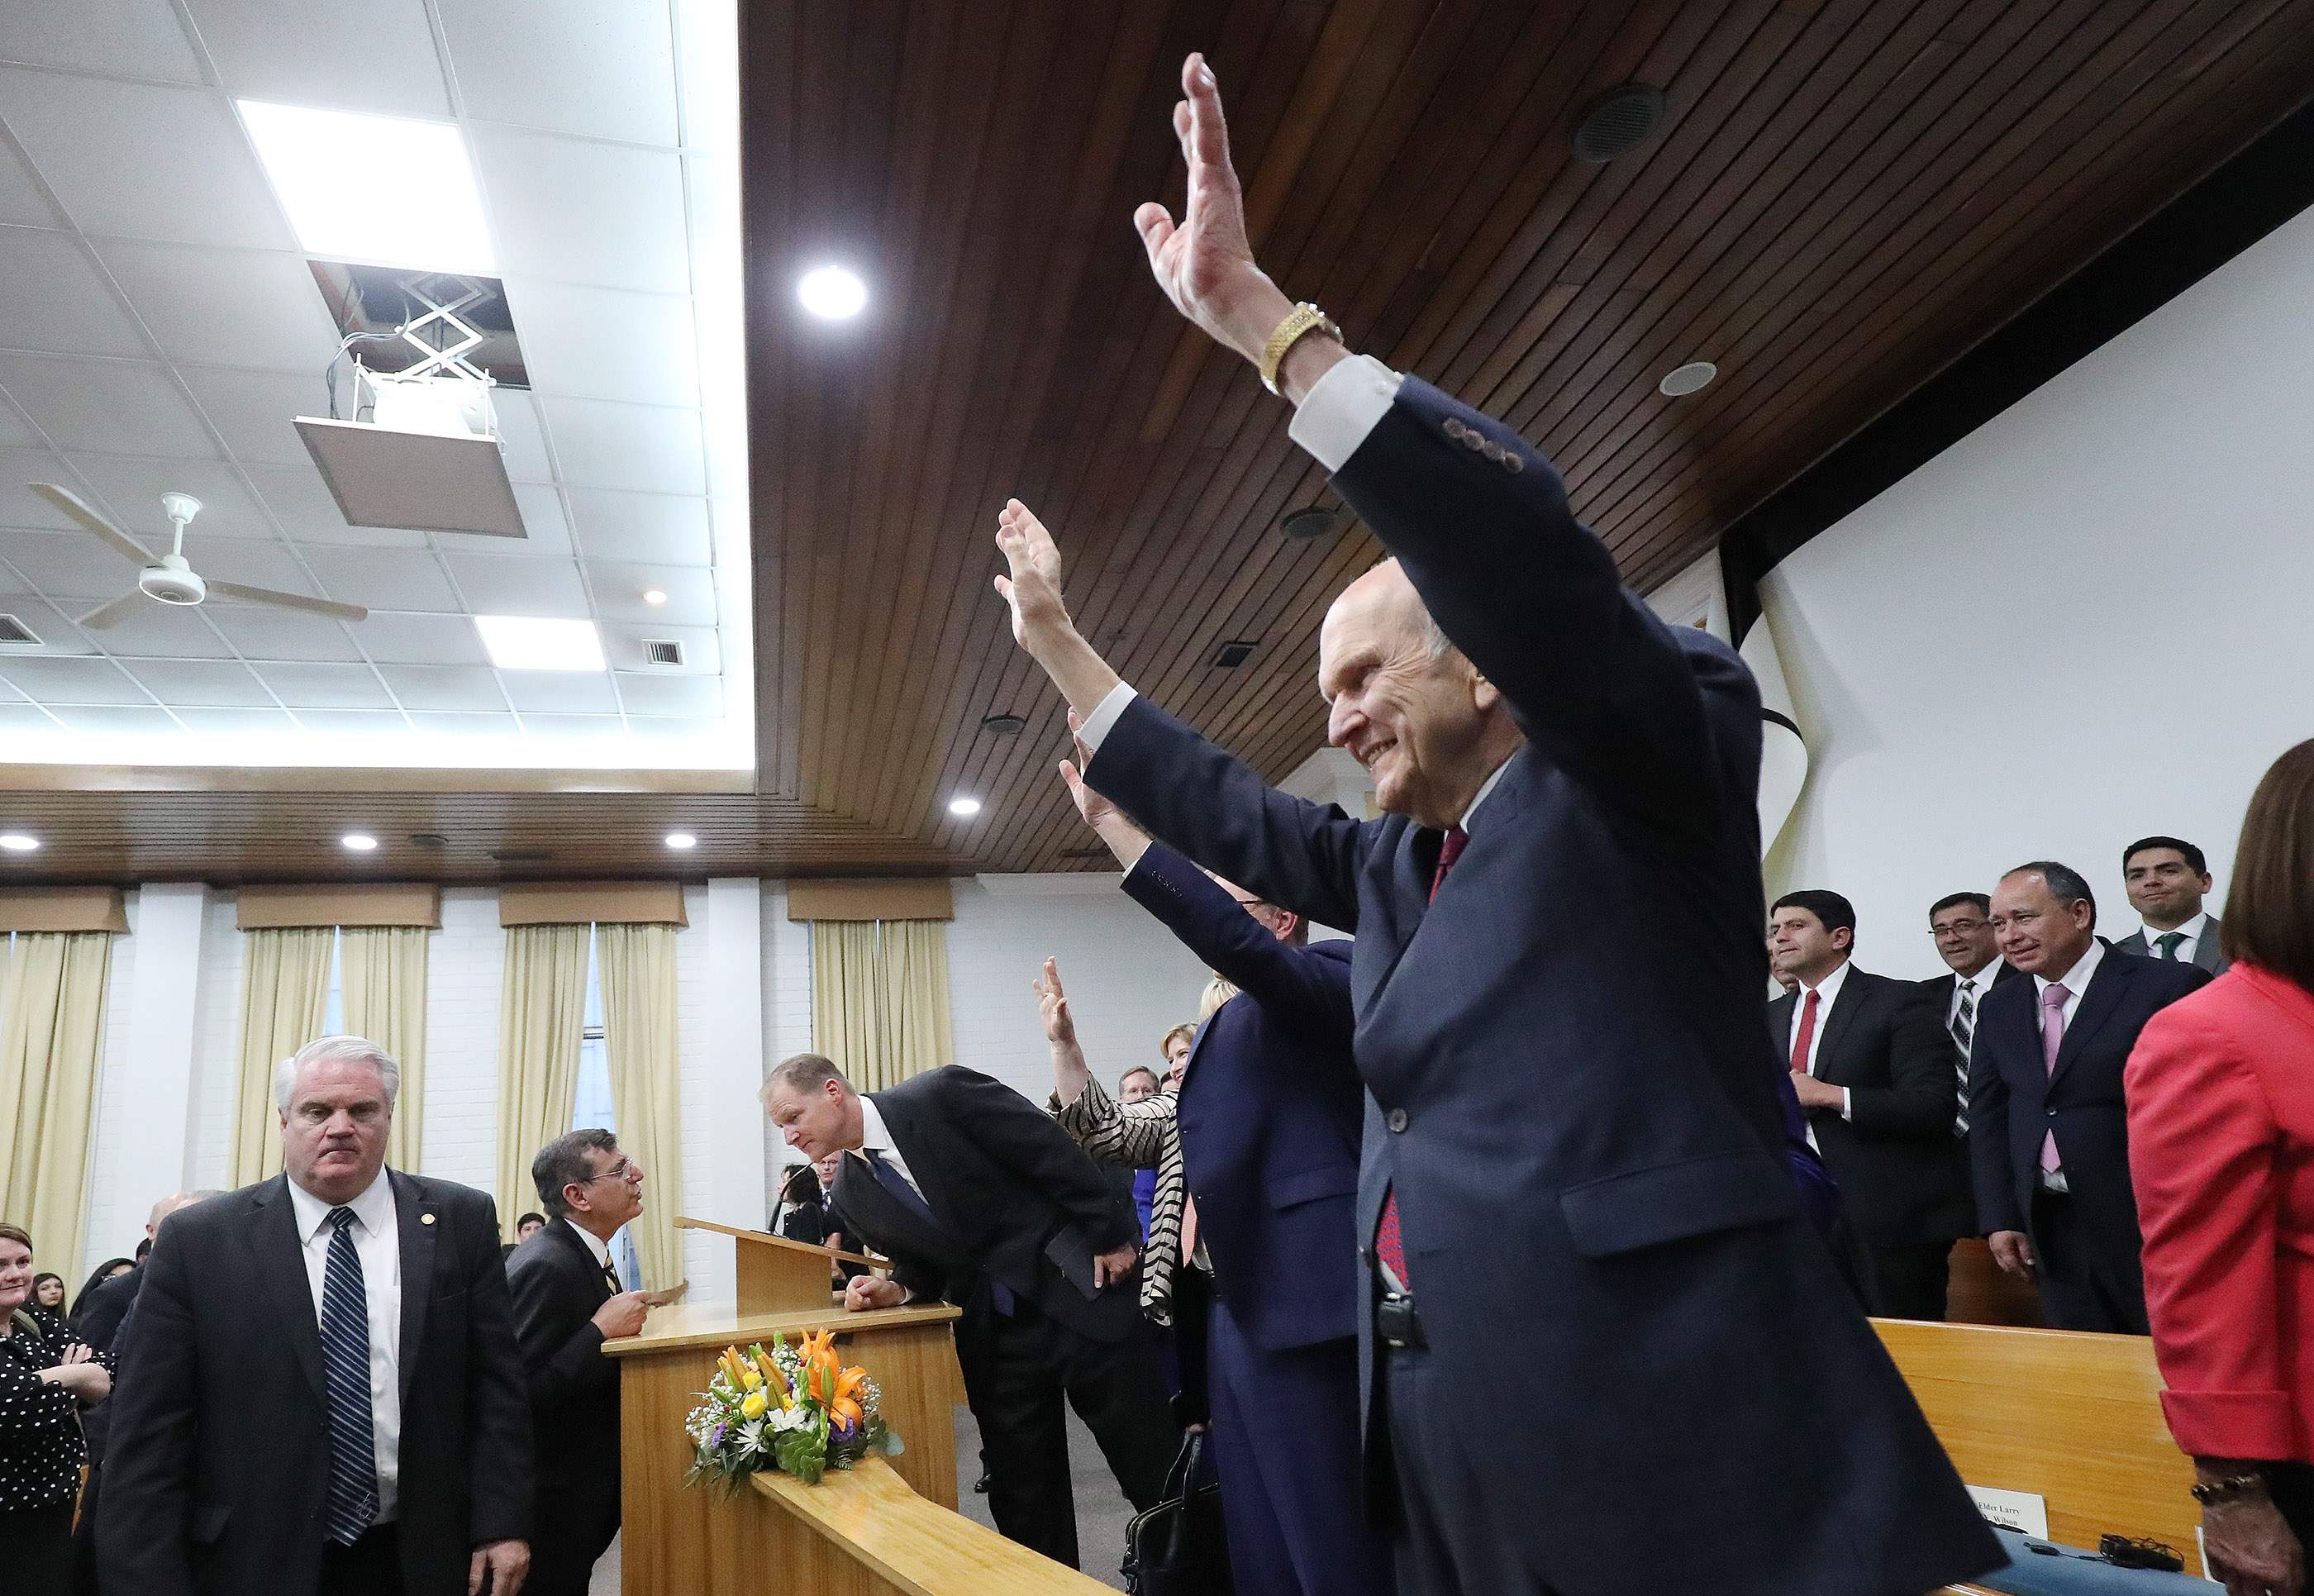 President Russell M. Nelson of The Church of Jesus Christ of Latter-day Saints waves to attendees after a youth devotional in Concepcion, Chile, on Saturday, Oct. 27, 2018.